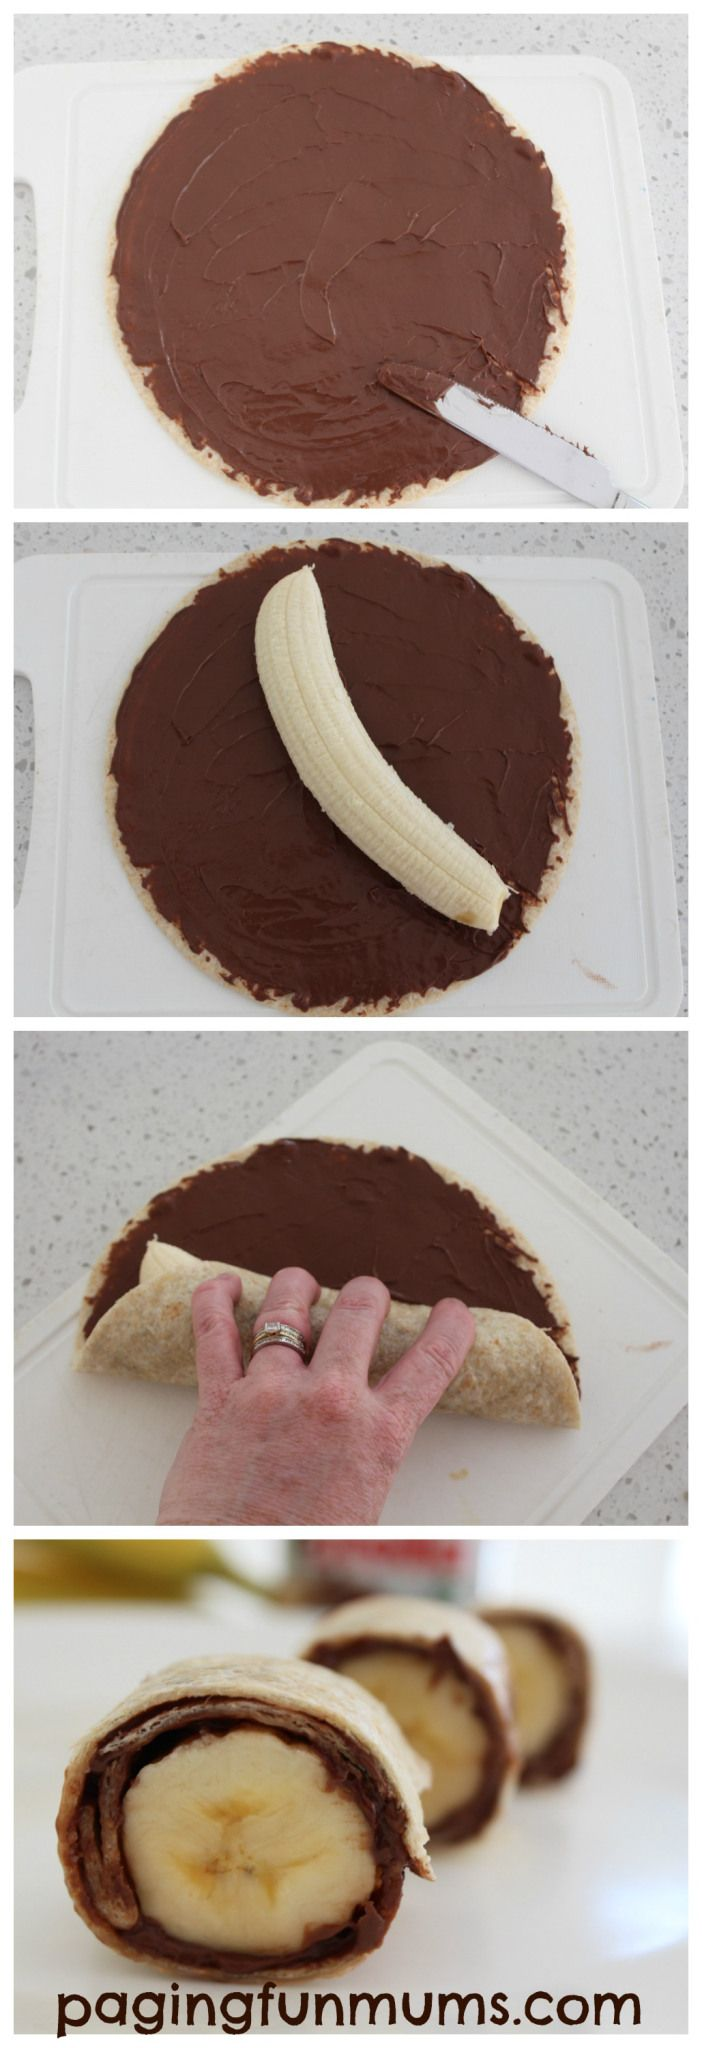 Nutella and banana wrap. Can be easy on the go breakfast.